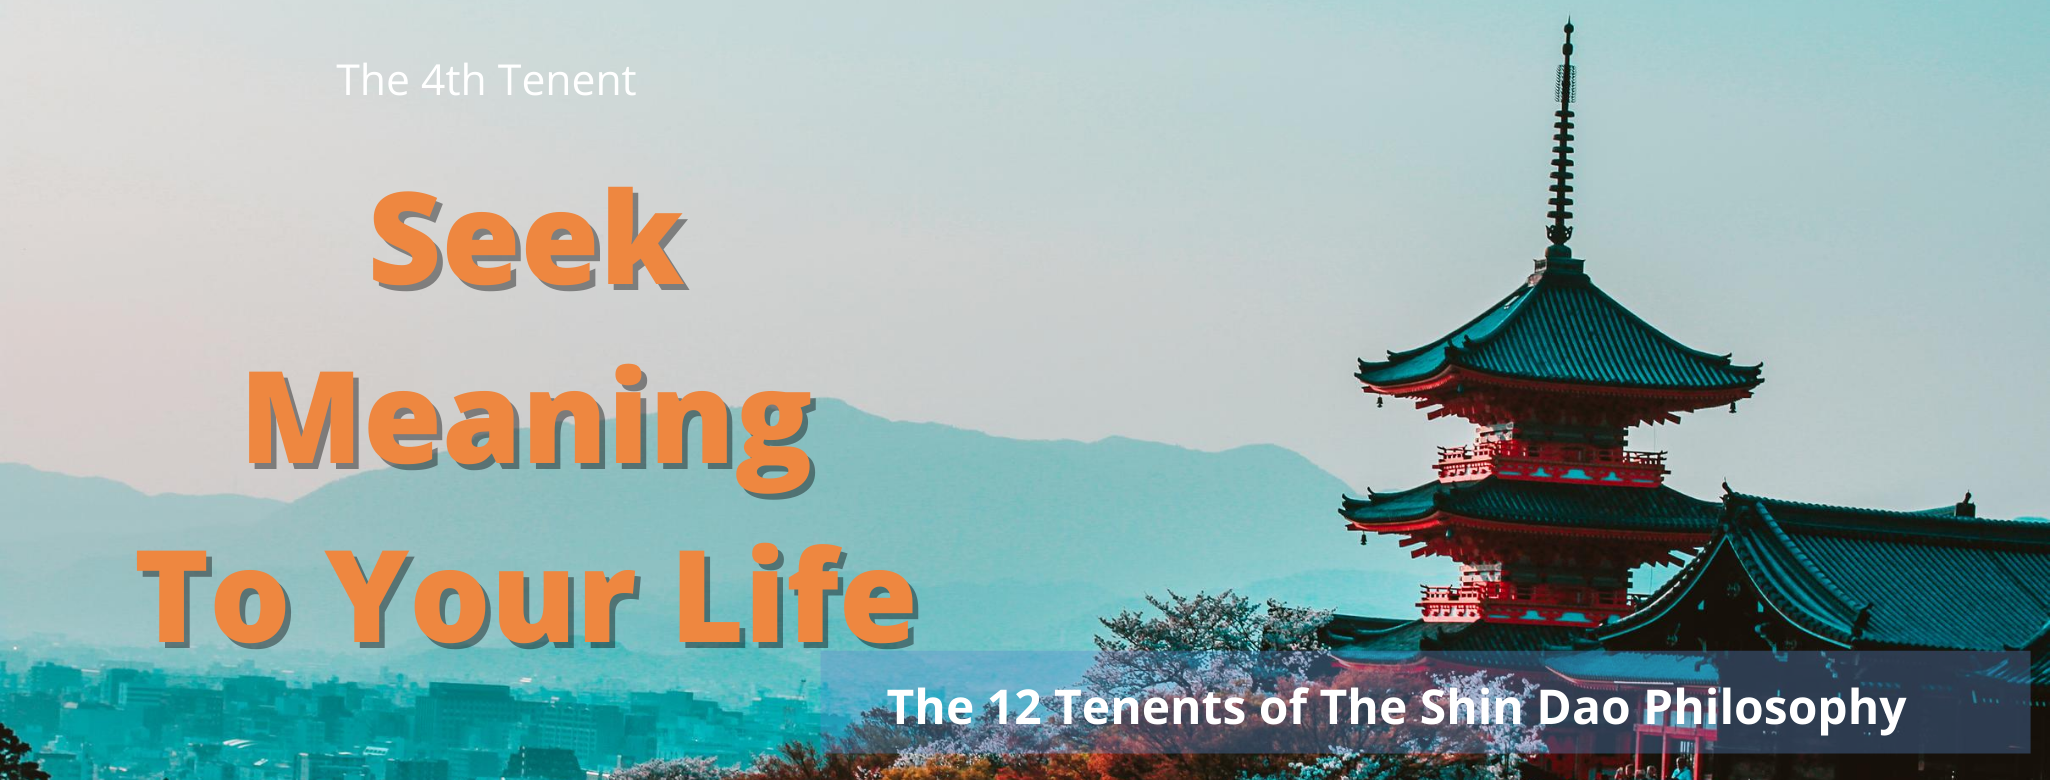 SEEK MEANING TO YOUR LIFE